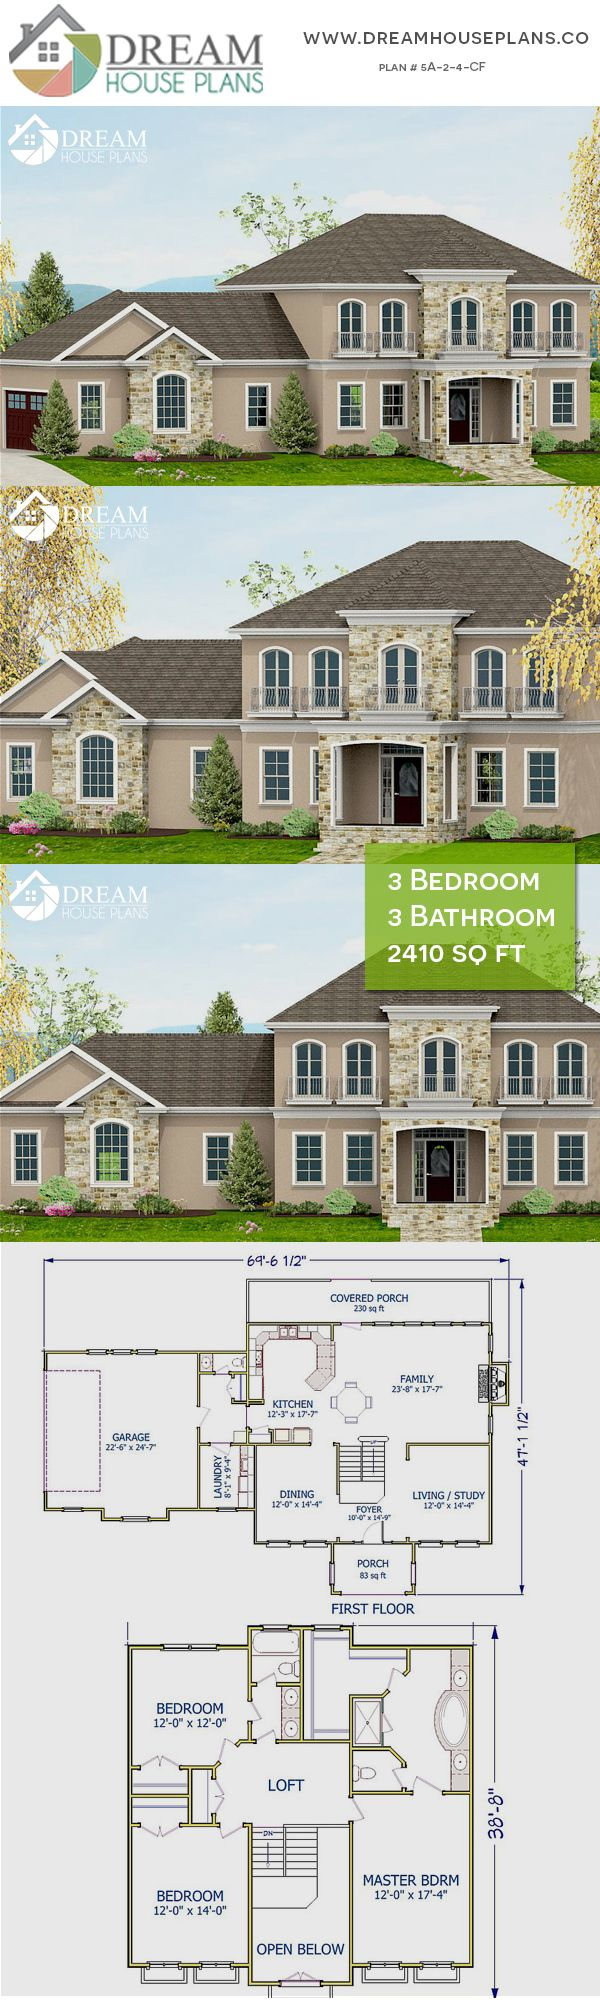 Dream House Plans Popular Colonial 3 Bedroom 2410 Sq Ft